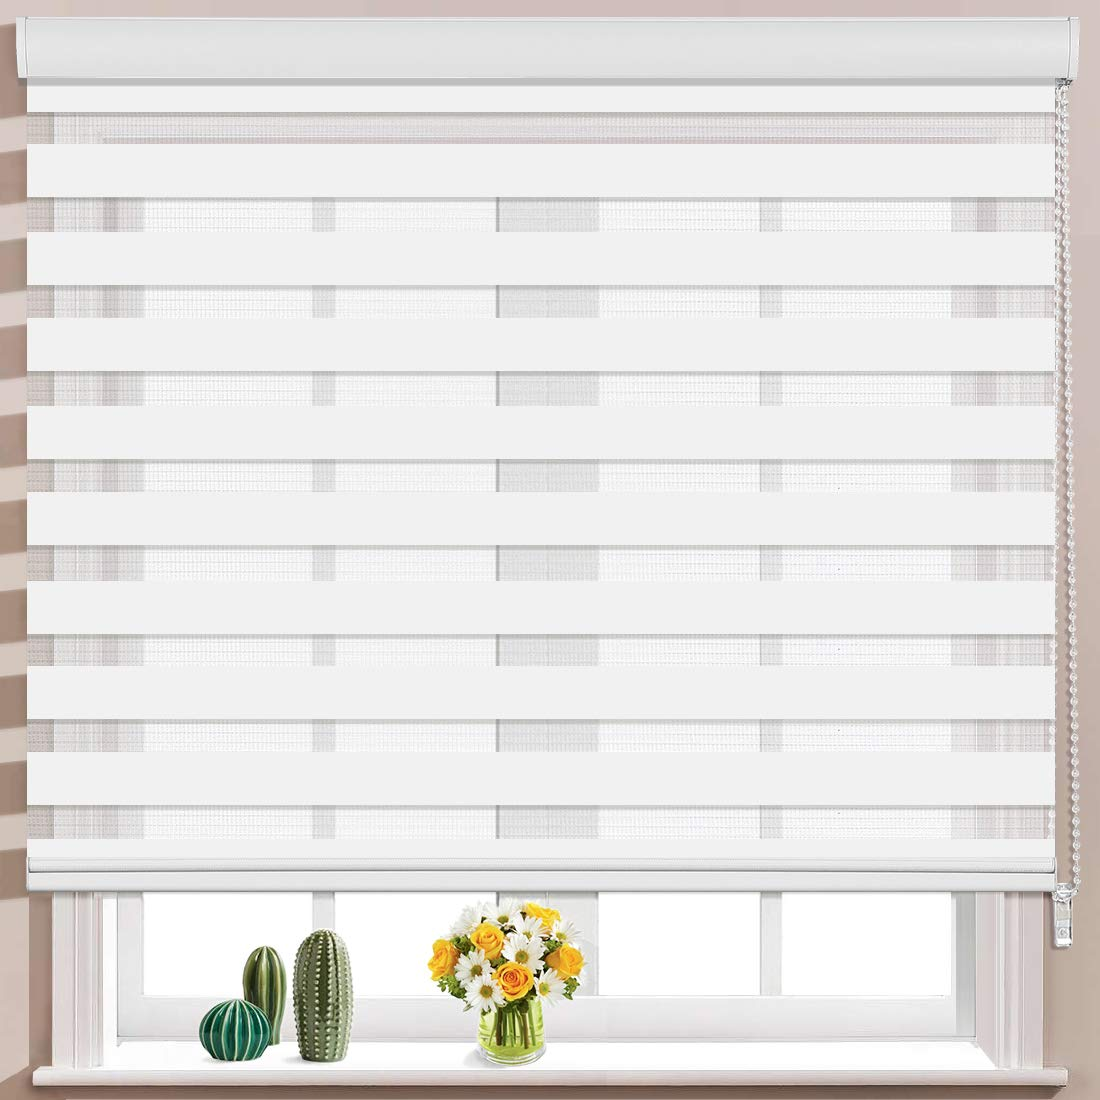 Keego Window Blinds Custom Cut to Size, White Zebra Blinds with Dual Layer Roller Shades, [Size W 35 x H 72] Dual Layer Sheer or Privacy Light Control for Day and Night